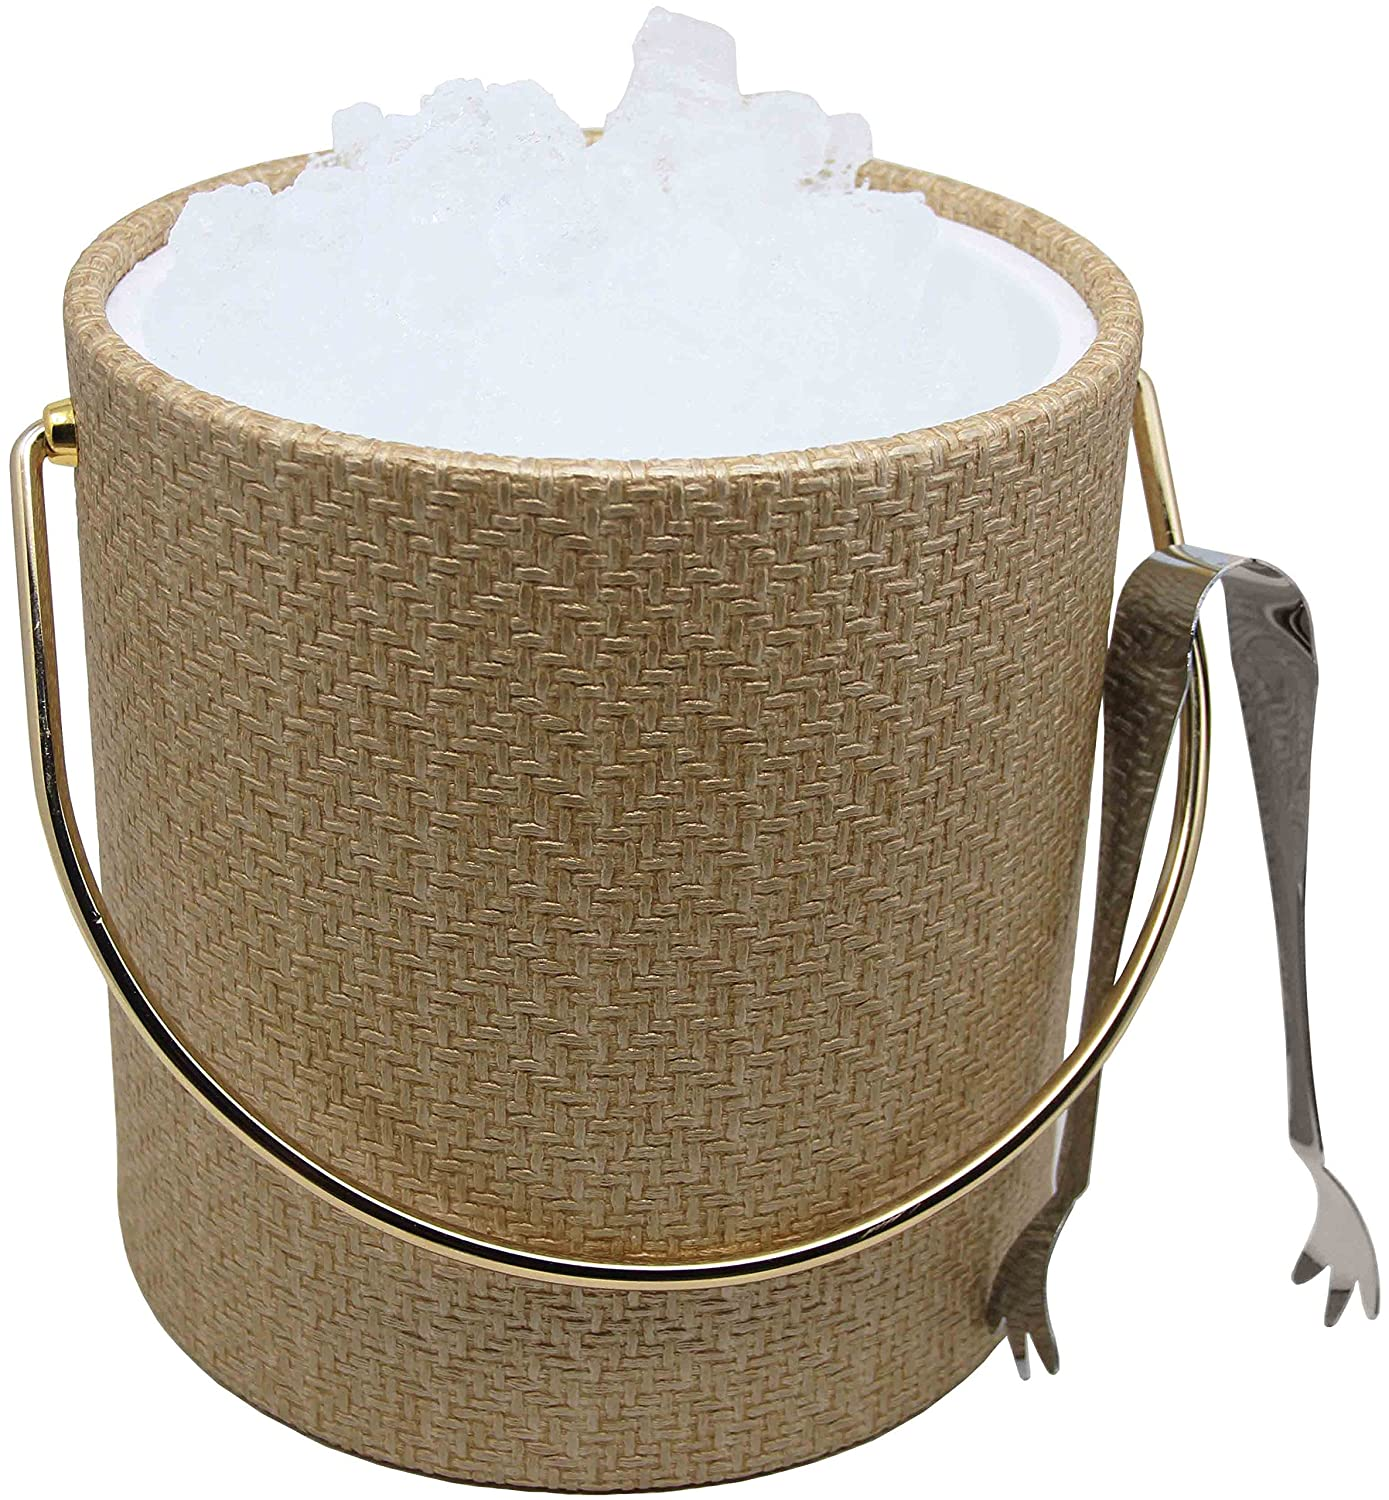 Beige Metallic Wicker Hand Made In USA Walnut Grain With Rope Handle Double Walled 3-Quart Insulated Ice Bucket With Bonus Ice Tongs